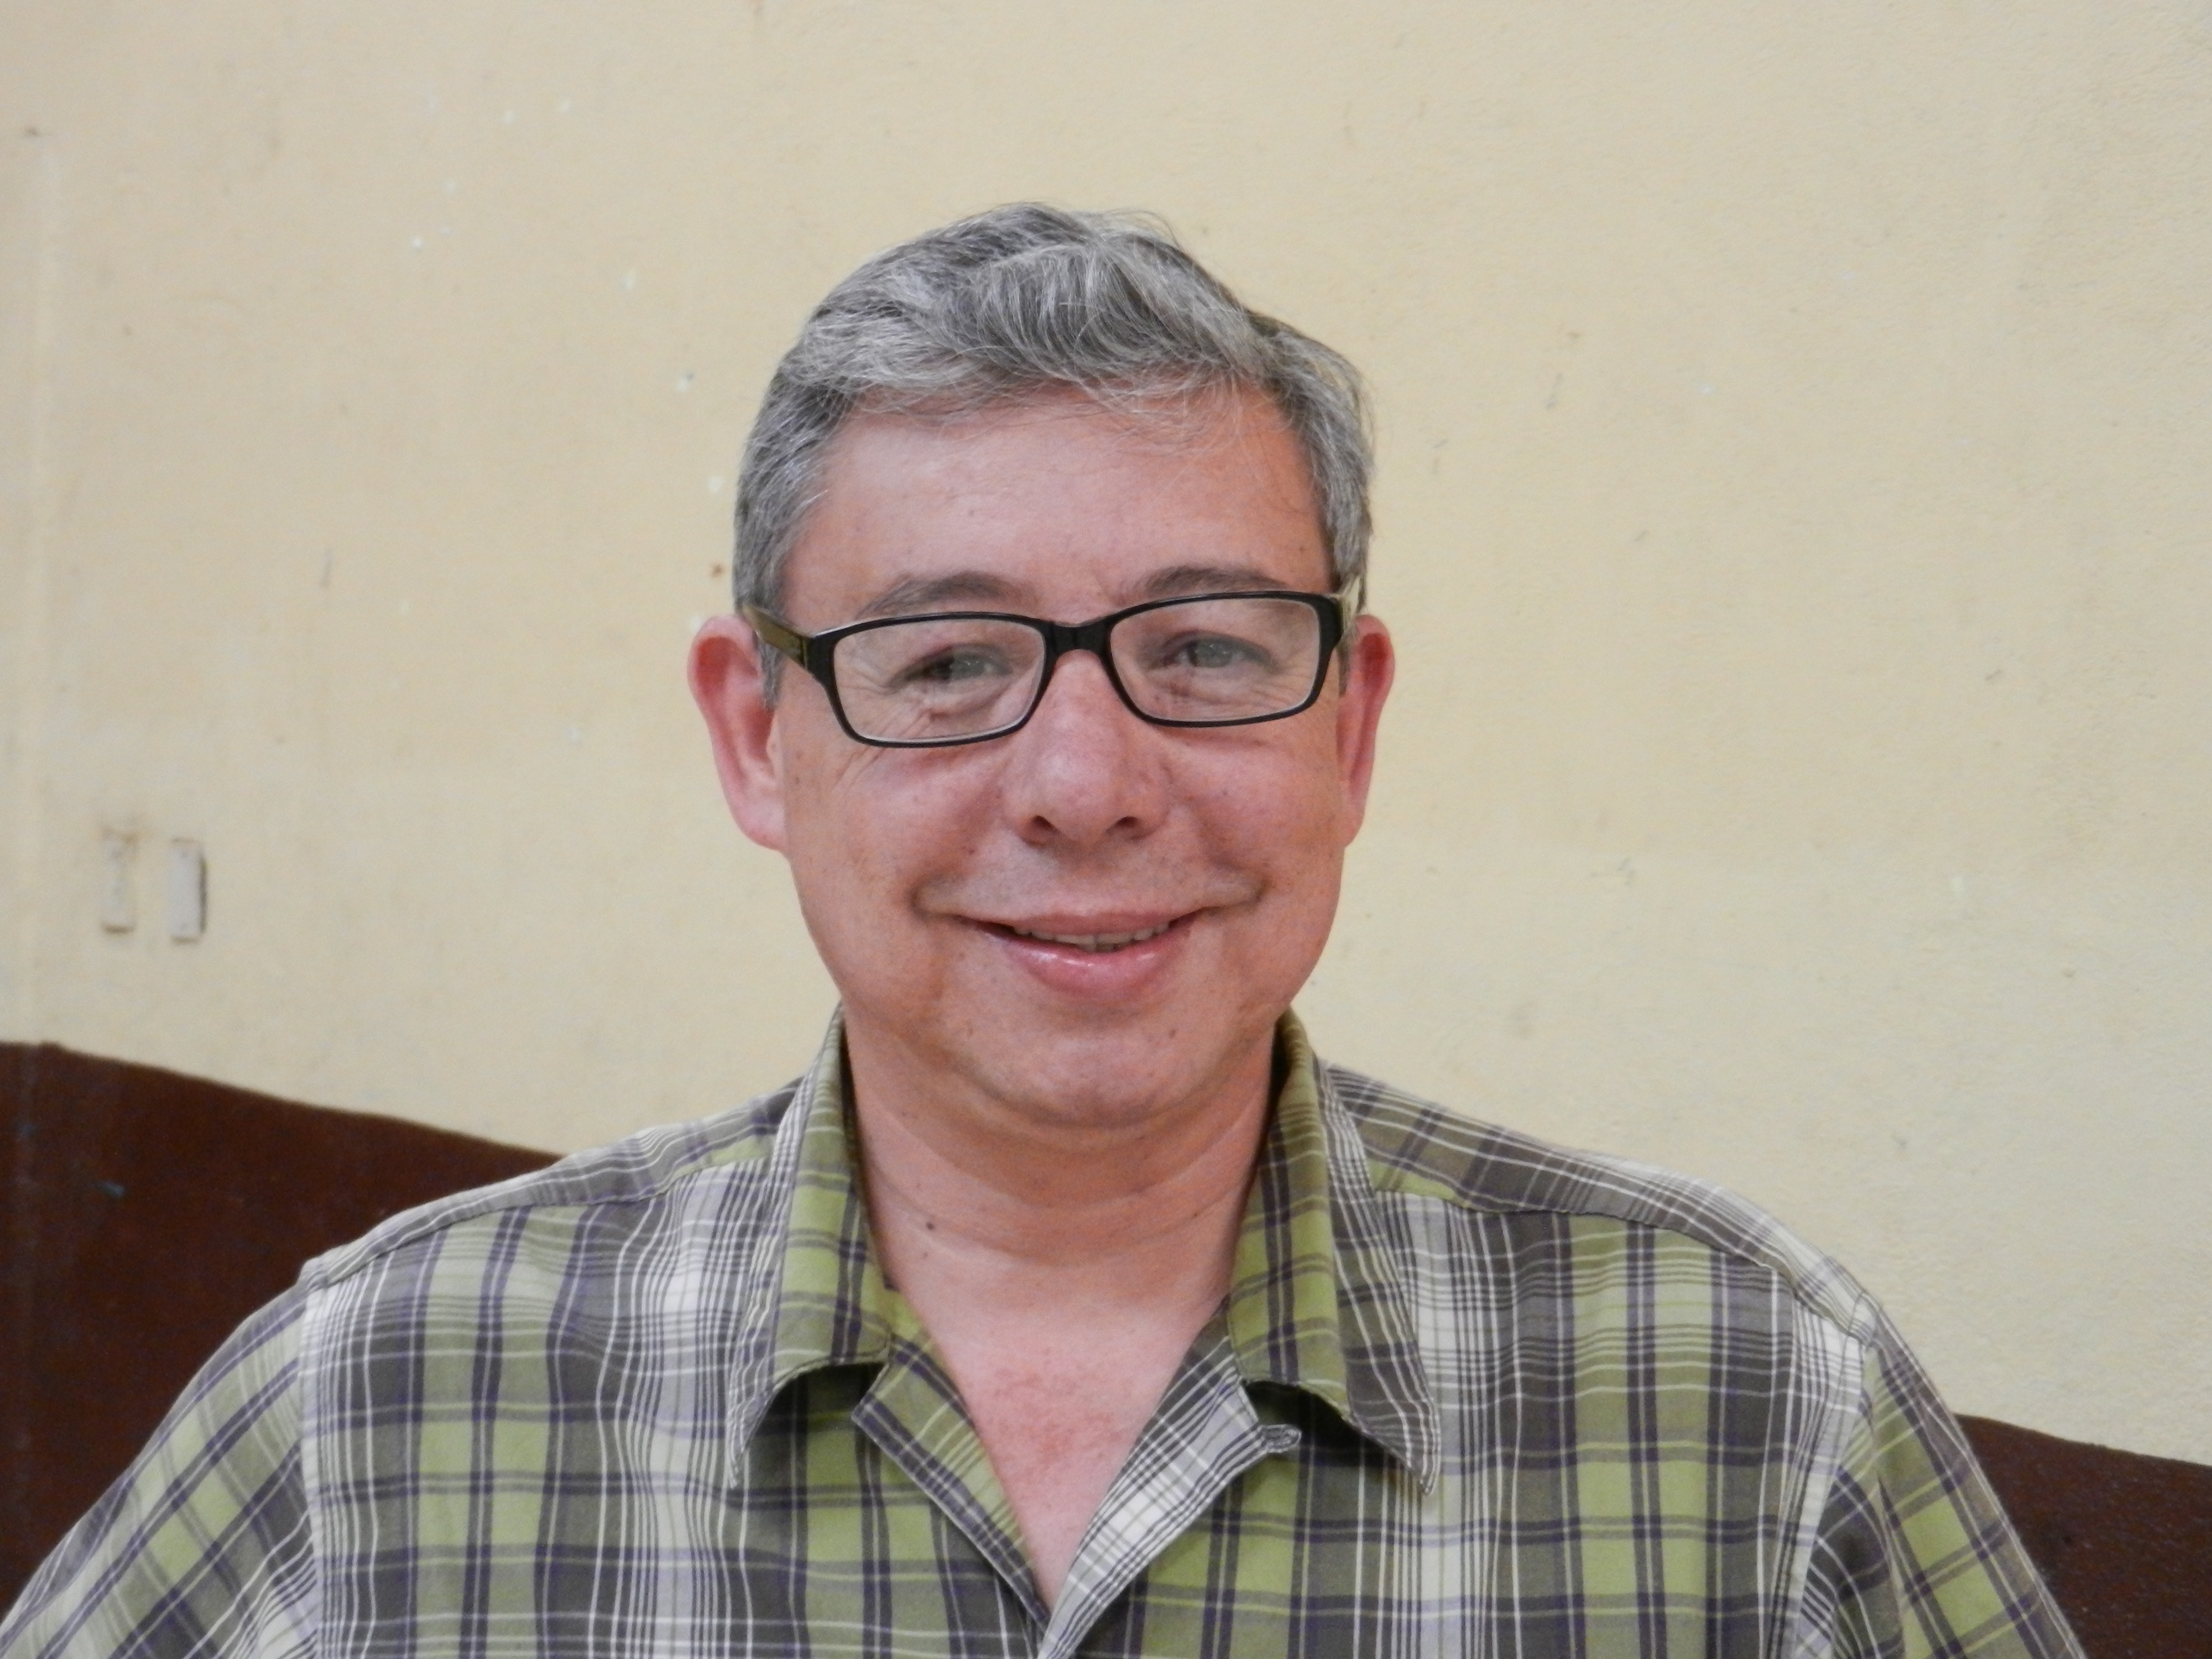 A gentleman pleased with the eyeglasses given to him at the G4G clinic.